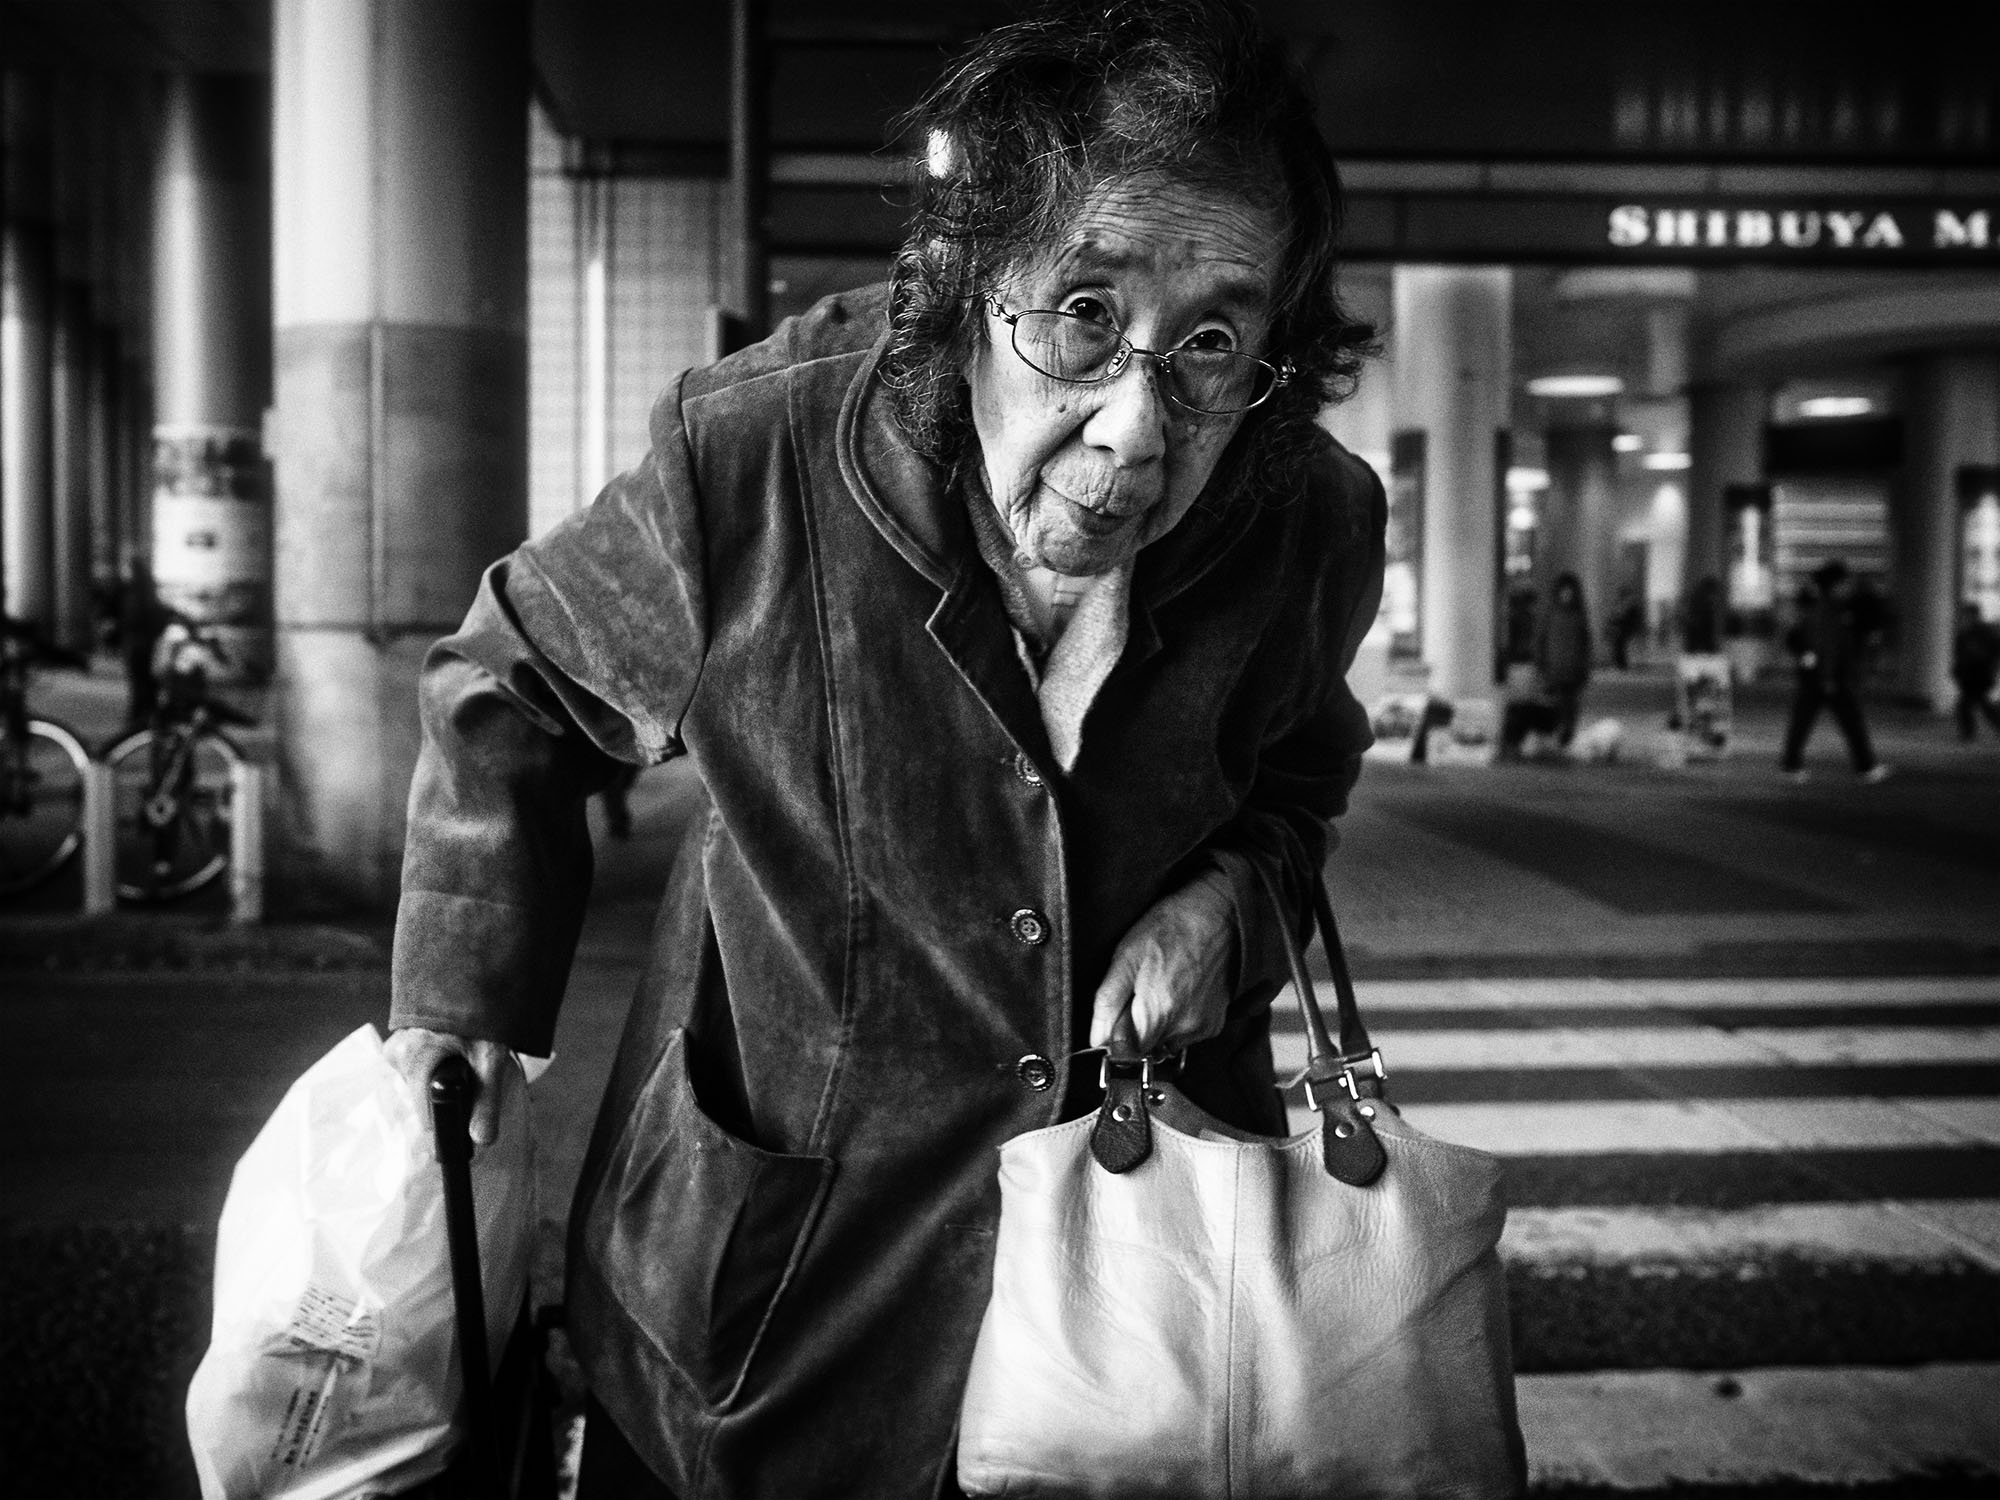 Street Photography | World Photography Organisation